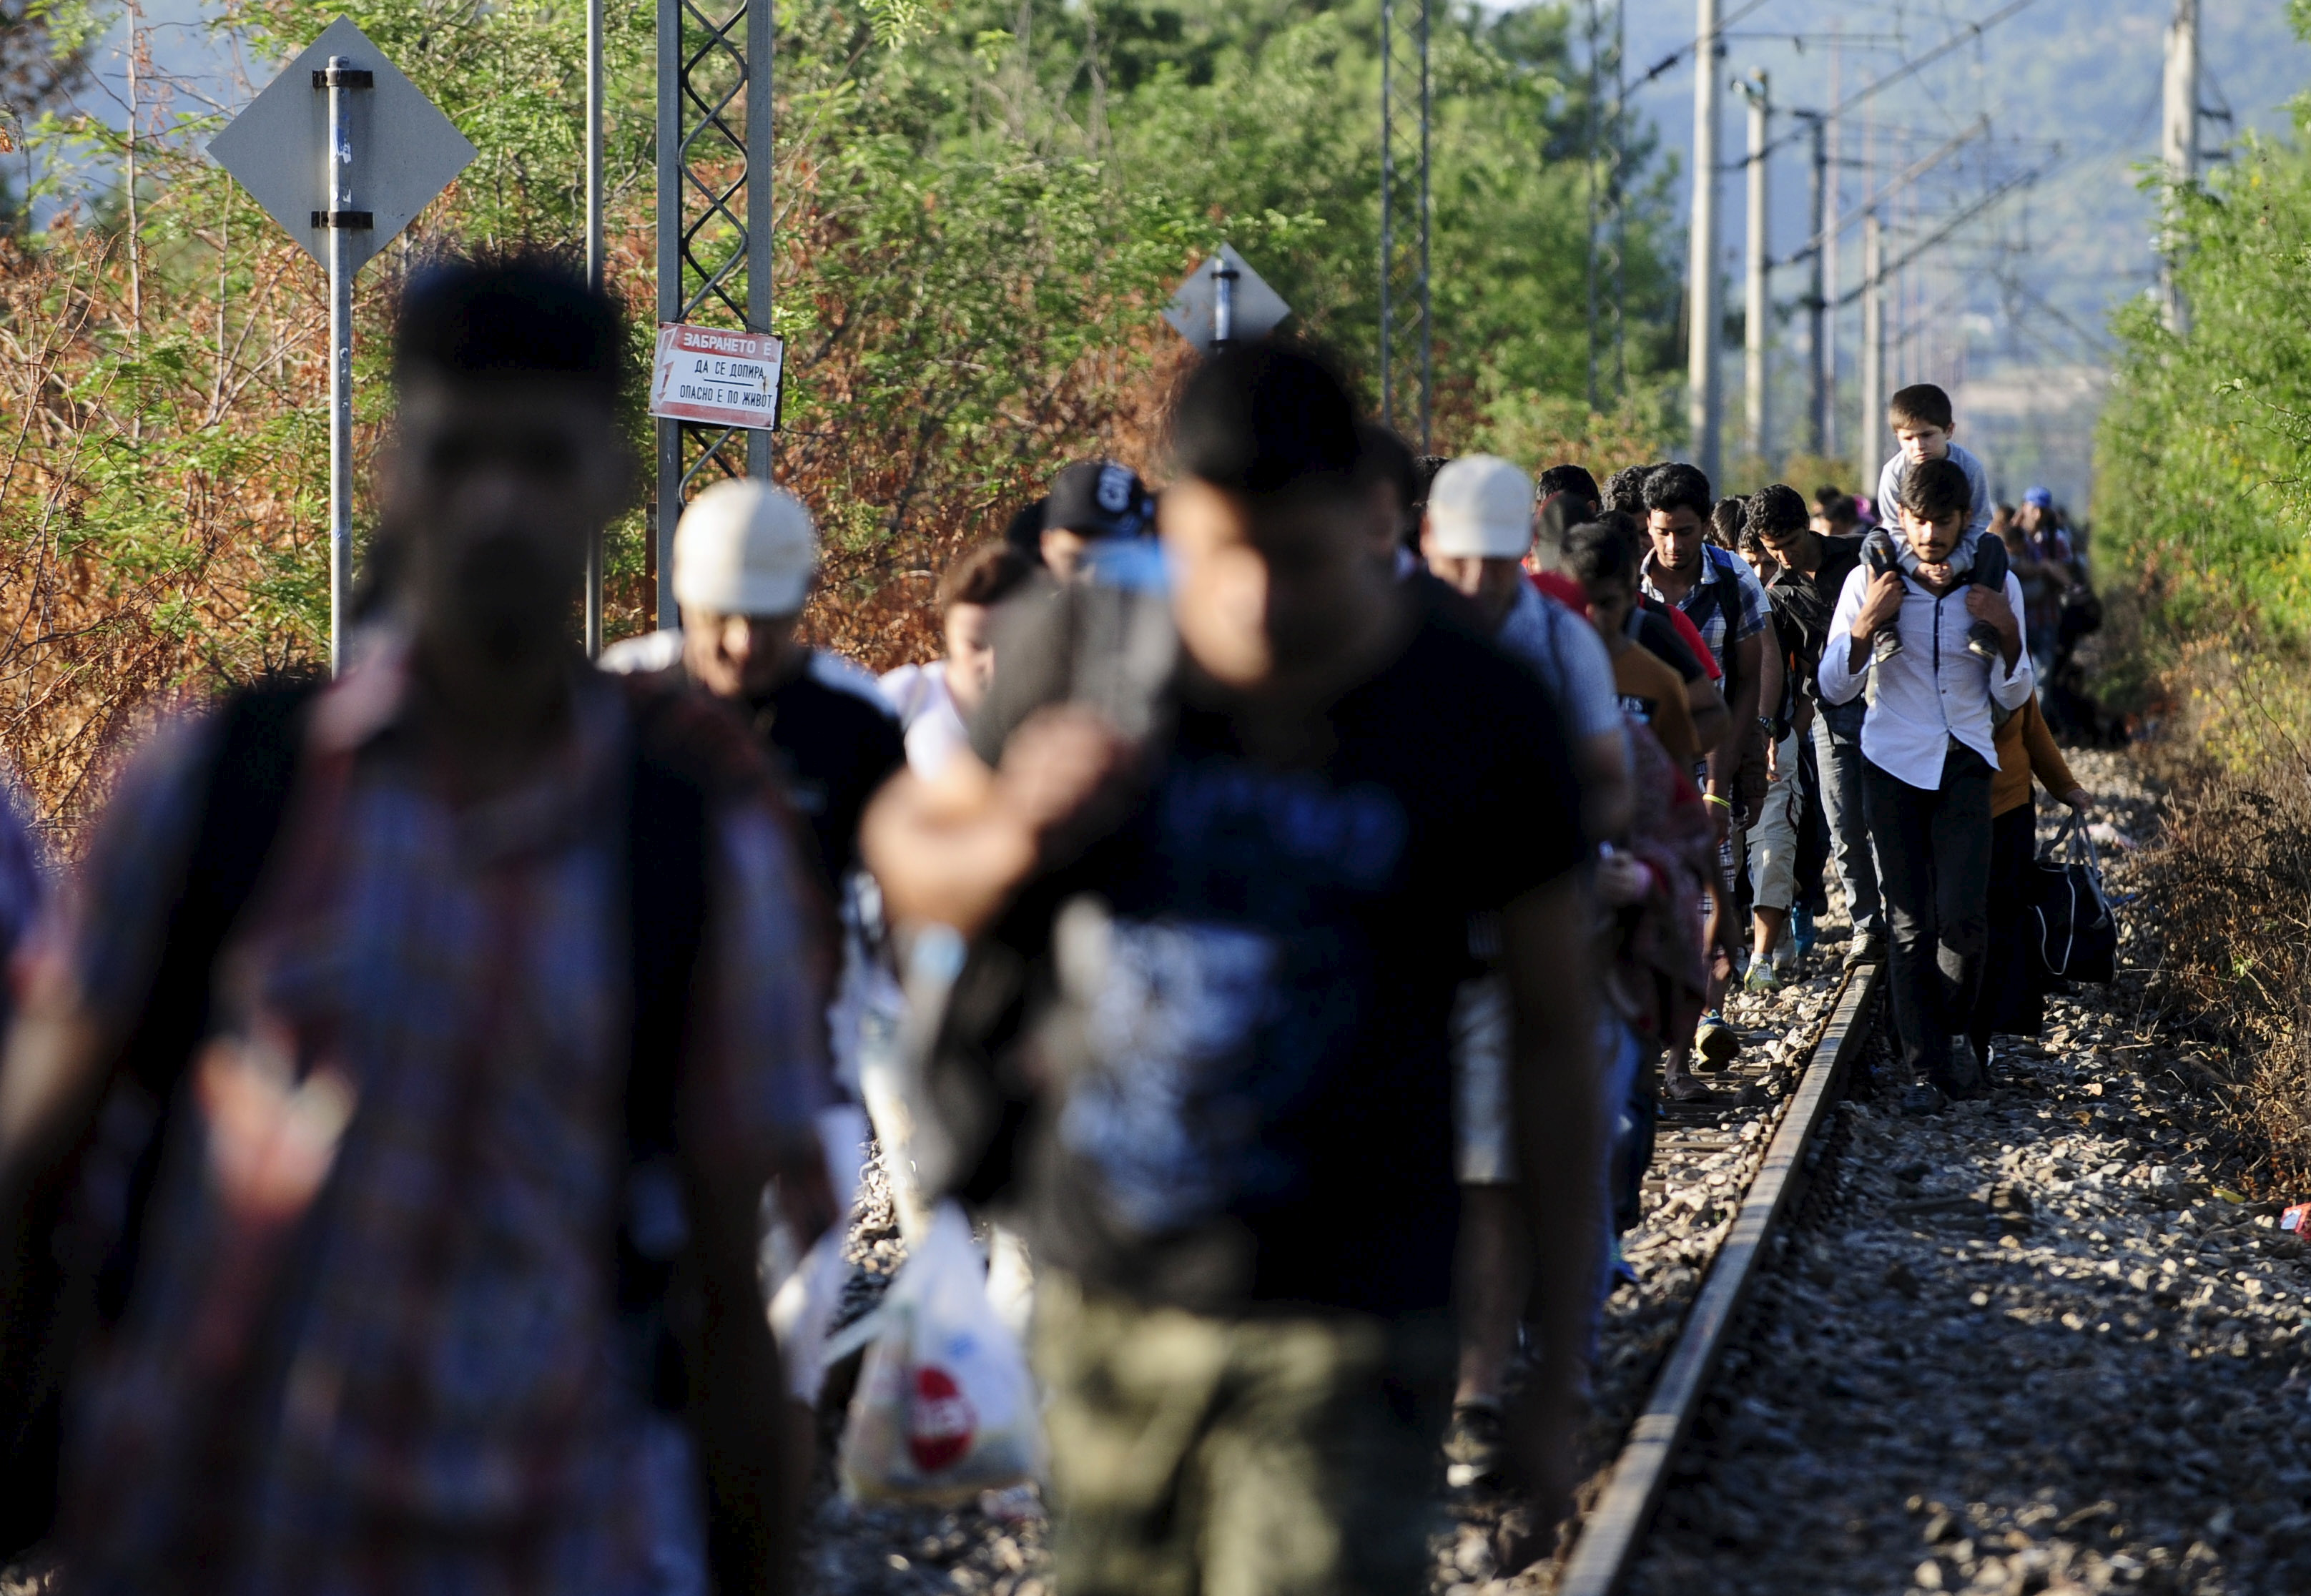 Migrants cross into Macedonia near Gevgelijia, from Greece's border with Macedonia, August 23, 2015. Photo by Ognen Teofilovski/Reuters.